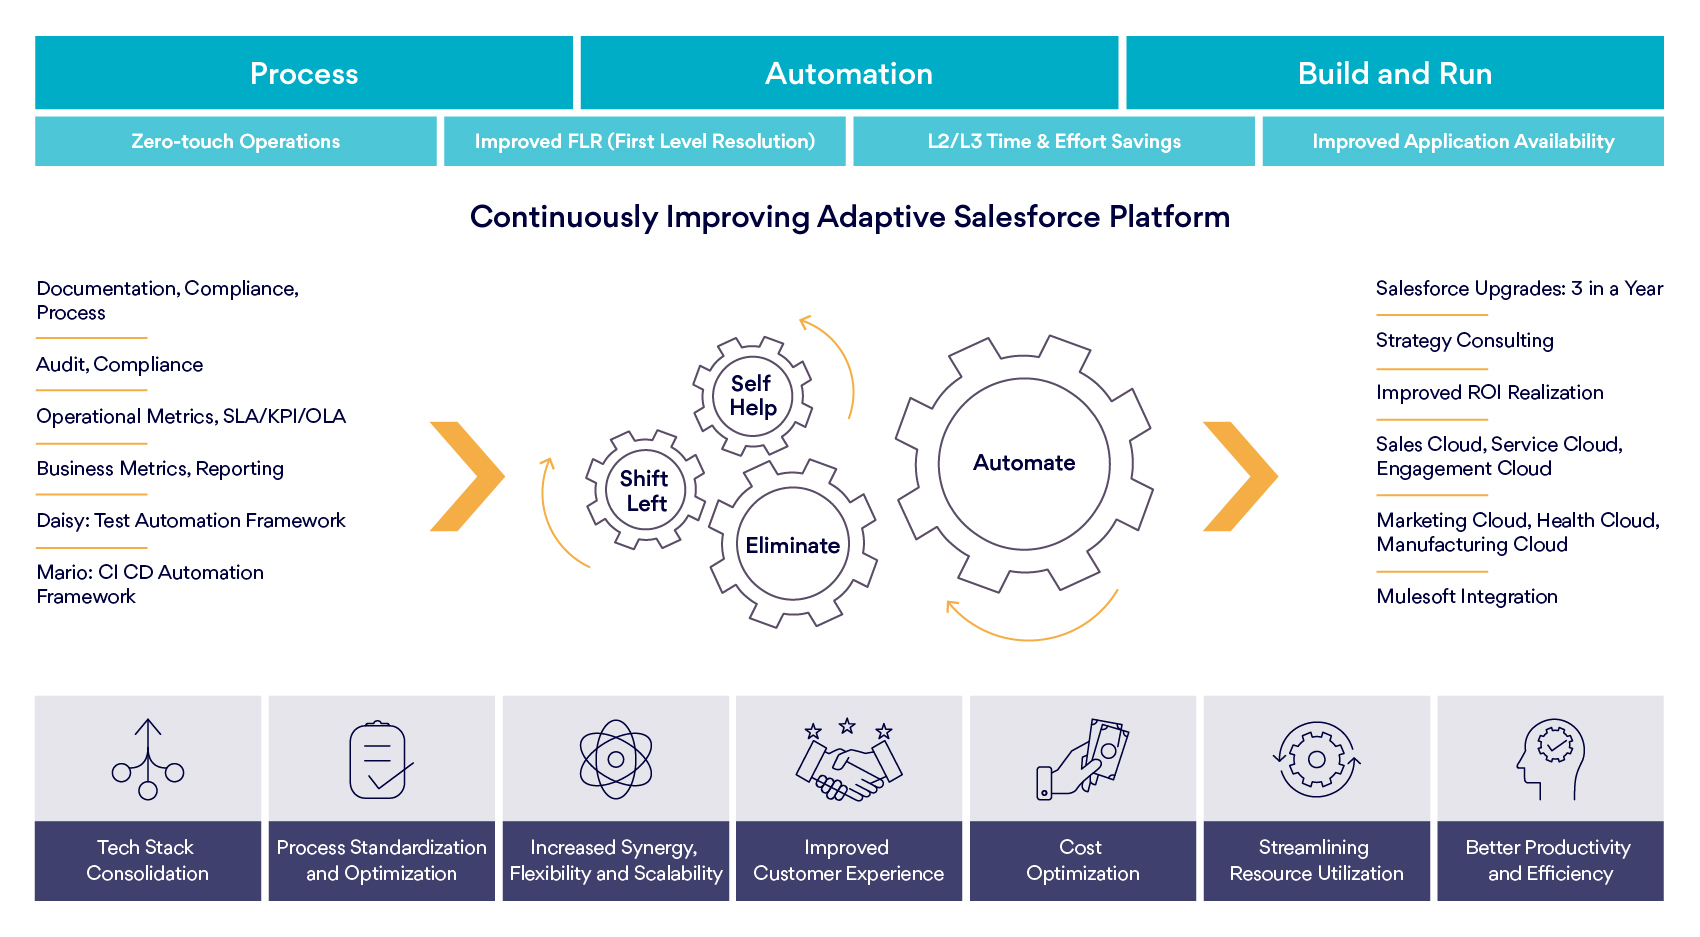 Integrated Operations - Framework and Accelerators